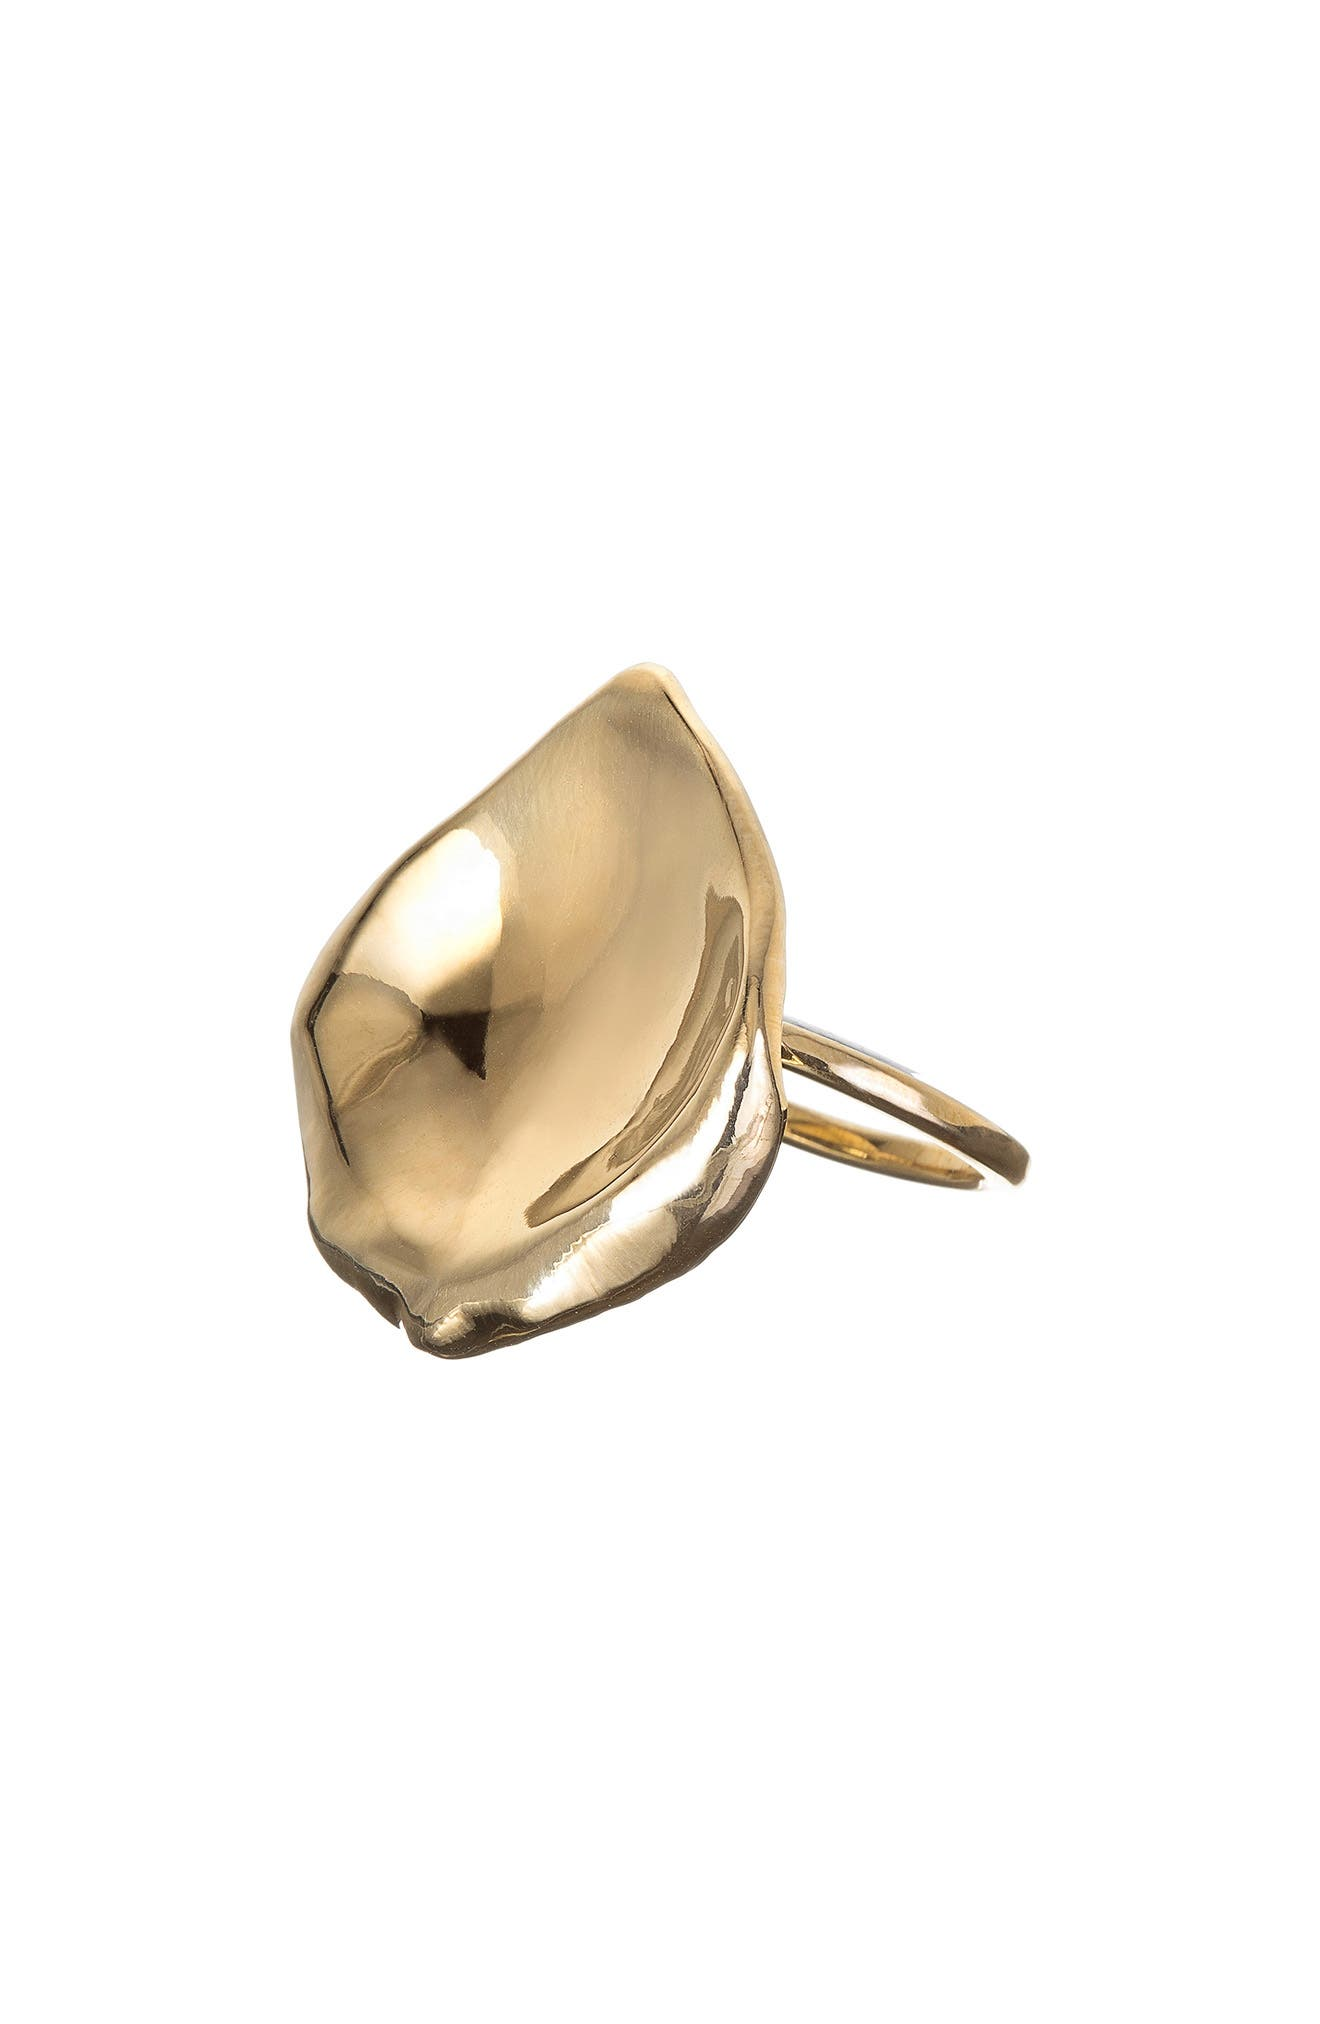 NORA KOGAN Rose Petal Ring in Gold Vermeil